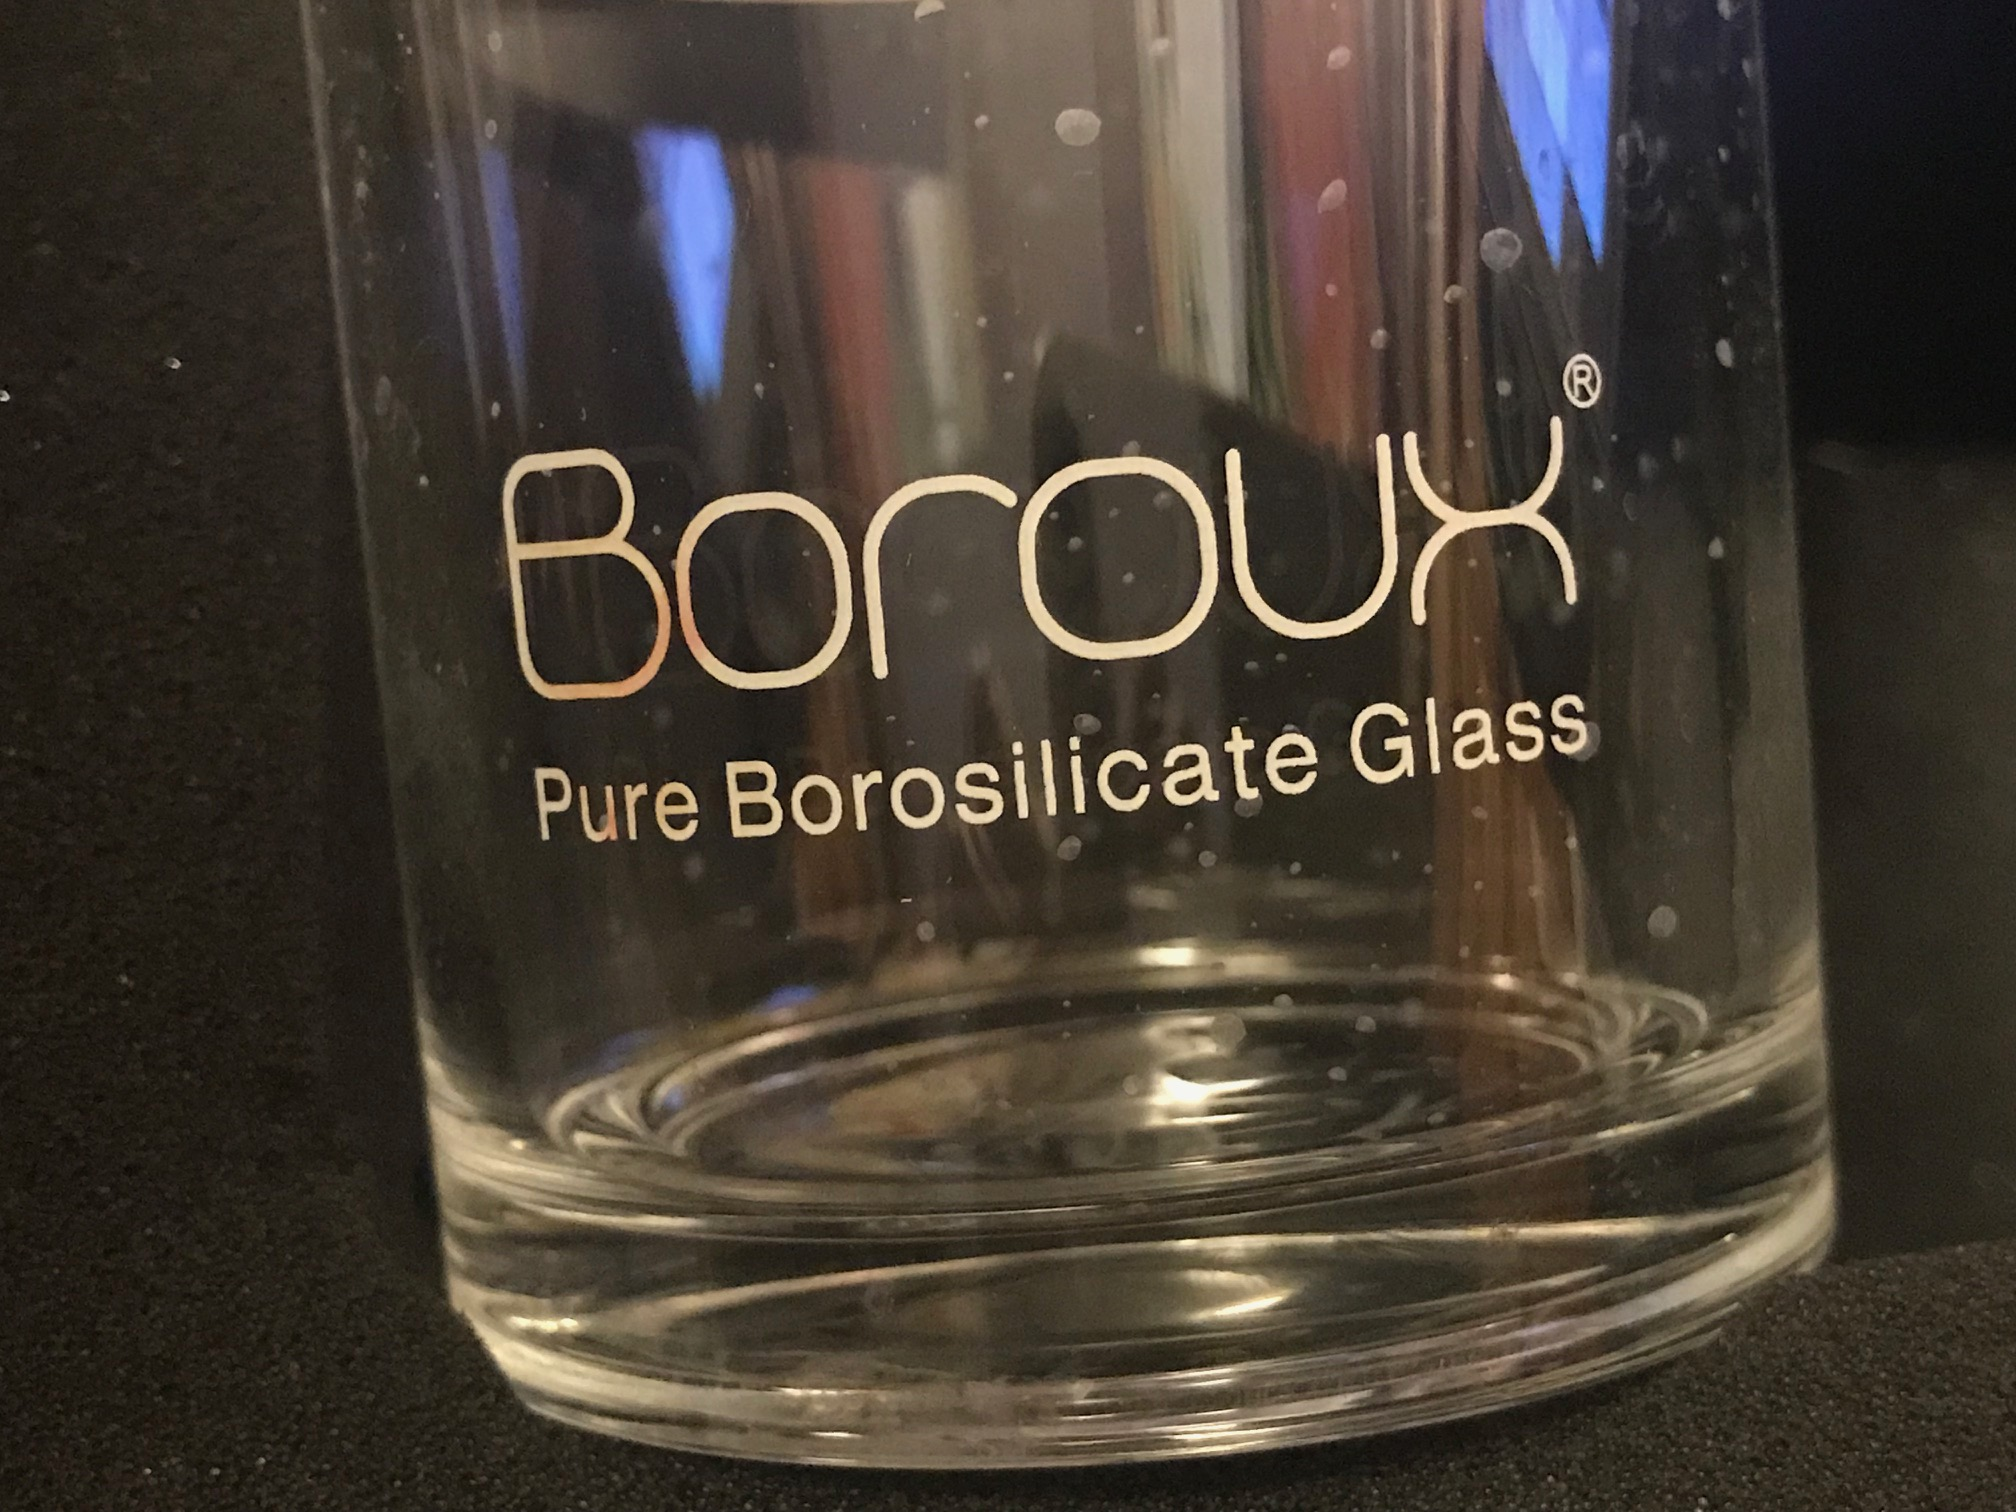 "Boroux ""Lead Free"" Water Bottle is Painted with Leaded Paint: 2,235 ppm Lead, 140 ppm Cadmium, 310 ppm Arsenic."